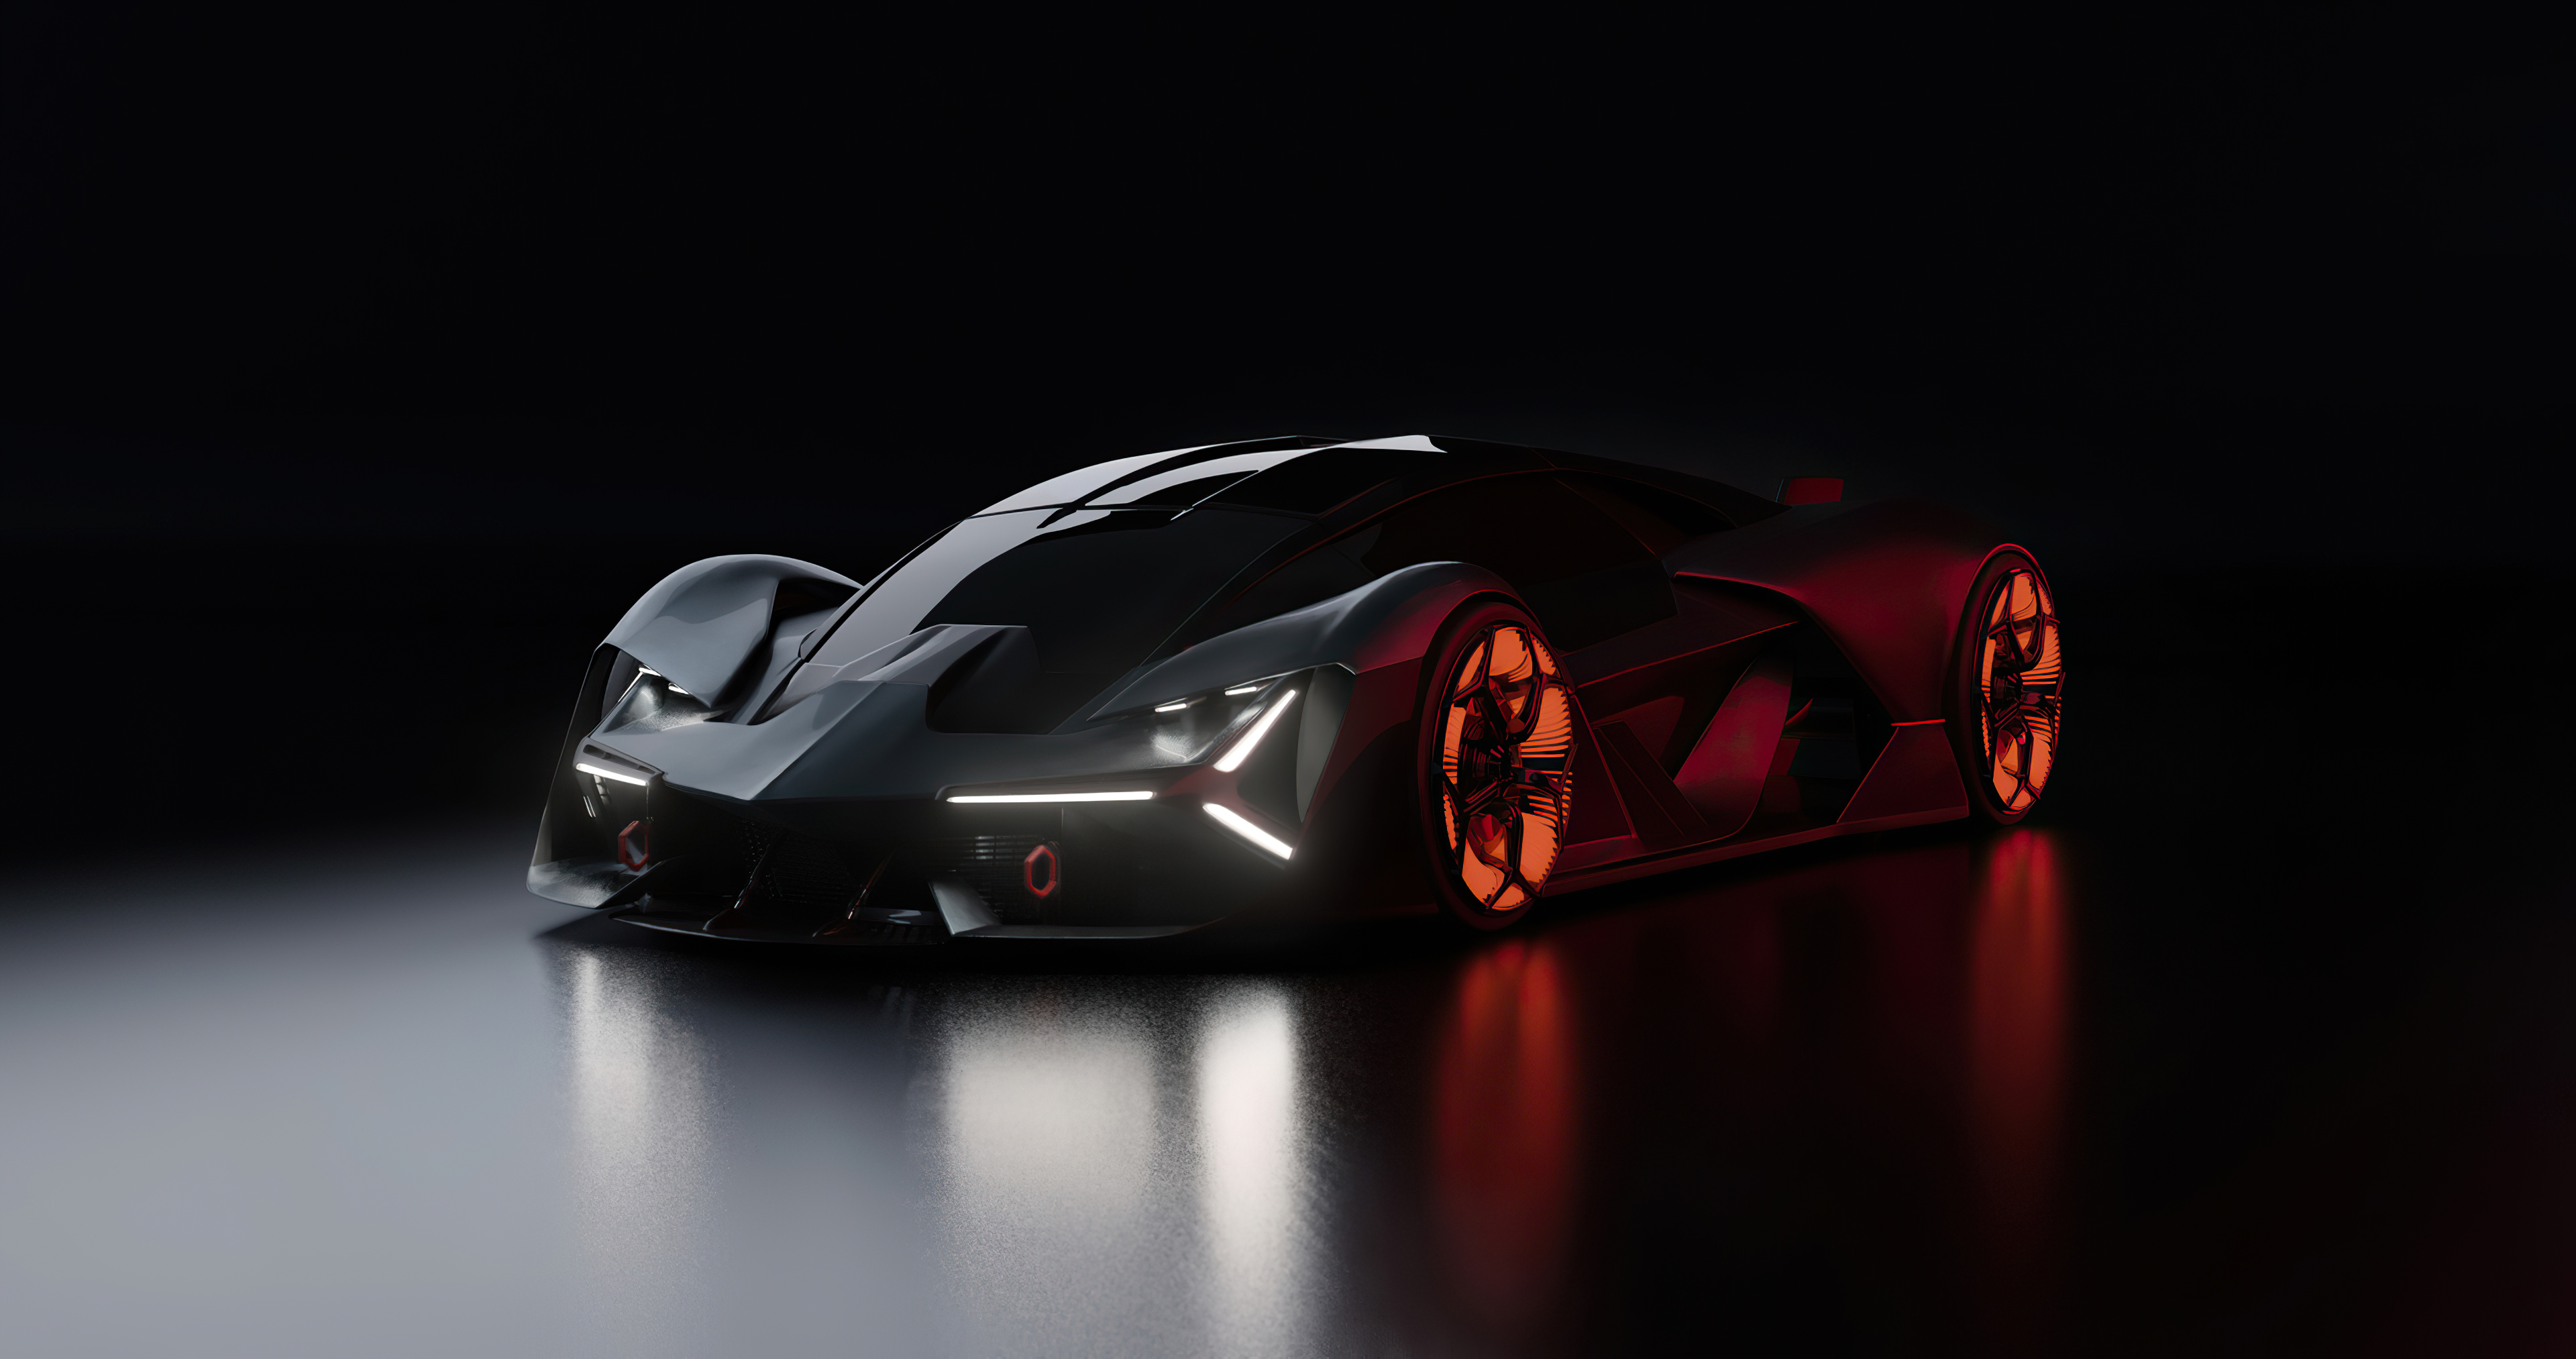 Lamborghini Terzo Millennio 2020 4k Hd Cars 4k Wallpapers Images Backgrounds Photos And Pictures